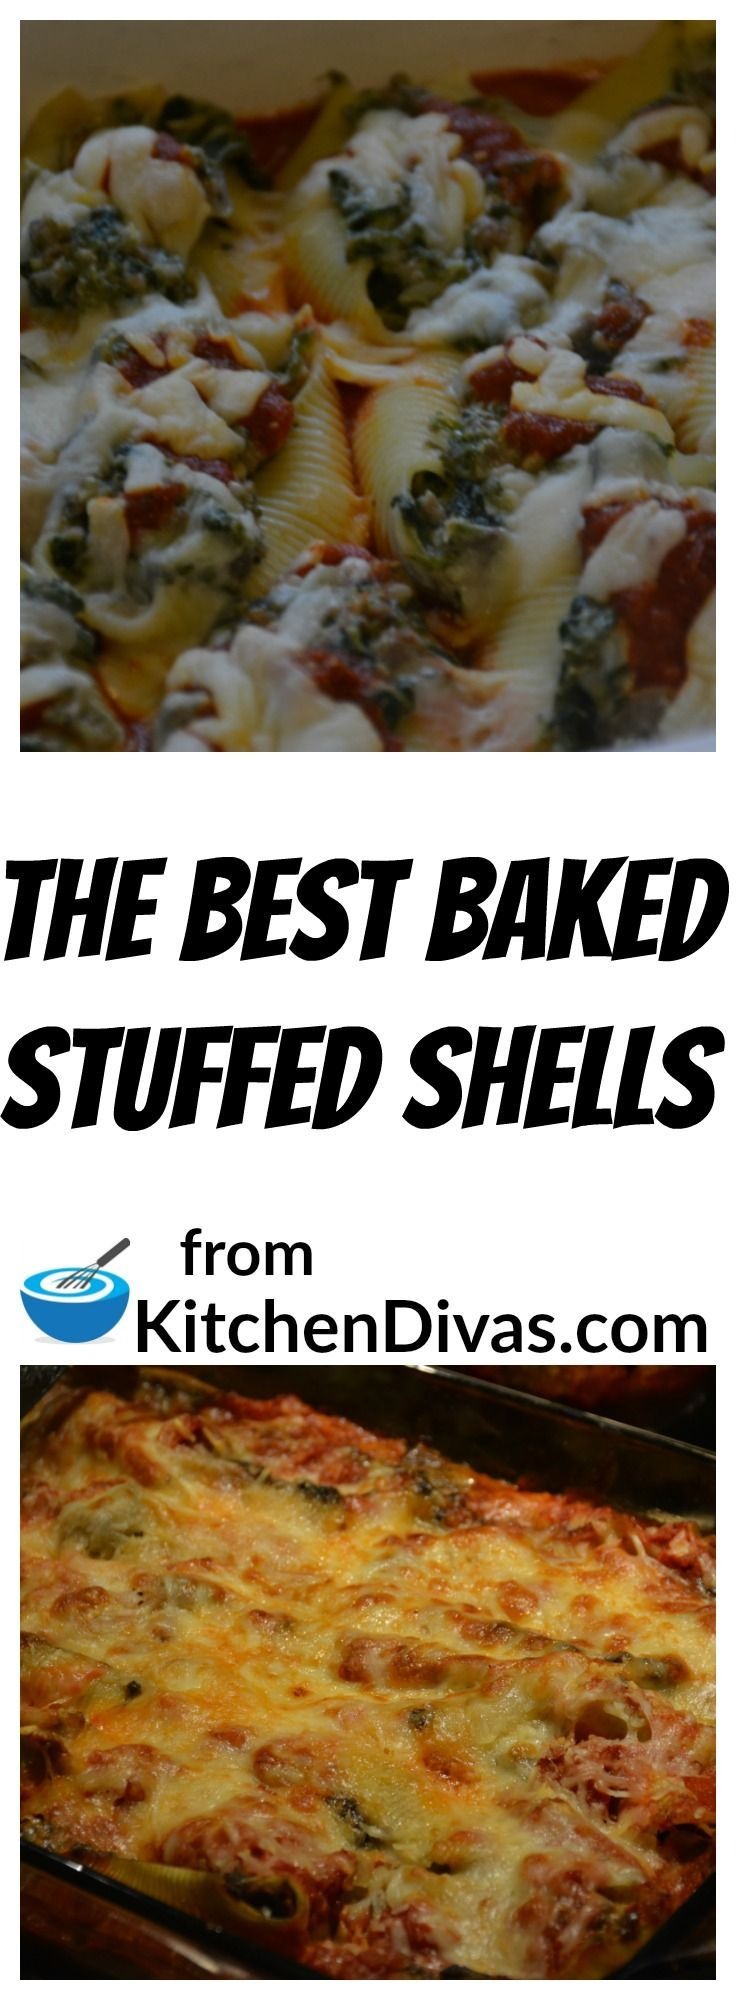 This is truly The Best Baked Stuffed Shells recipe you will ever come across.   Our favorite ground meat combinations are turkey and veal or pork and beef but you can use whichever ground meats you prefer.  They all will taste great.   We put more sauce on top of the shells than shown in the photo and mozzarella cheese across the top so the final product looks like a casserole.    This stuffed shell recipe is worth the effort.   They are delicious.  You really have to give them a try.